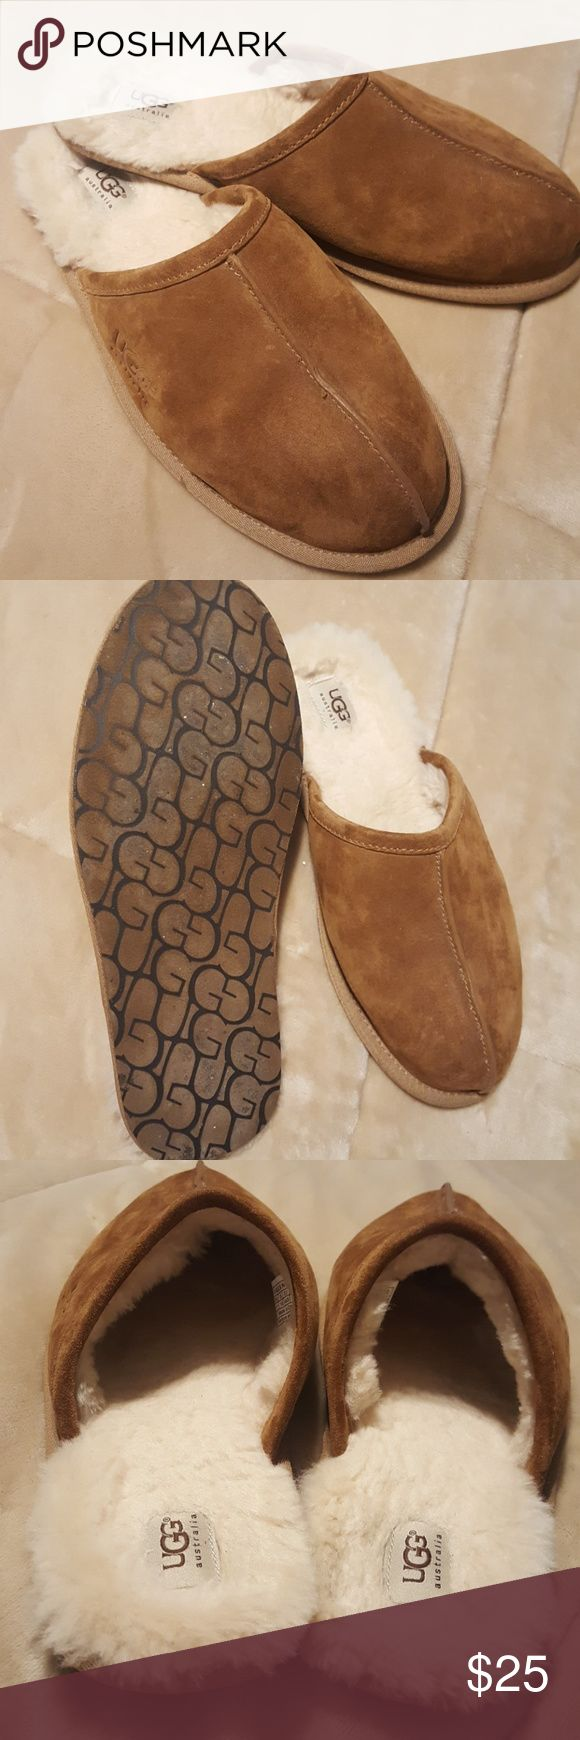 Men's UGG Australia slippers Almost perfect condition...only worn maybe twice around the house. My husband just isn't much of a slipper type person. Genuine leather lining and outsole with soft genuine sheepskin inside UGG Shoes Loafers & Slip-Ons